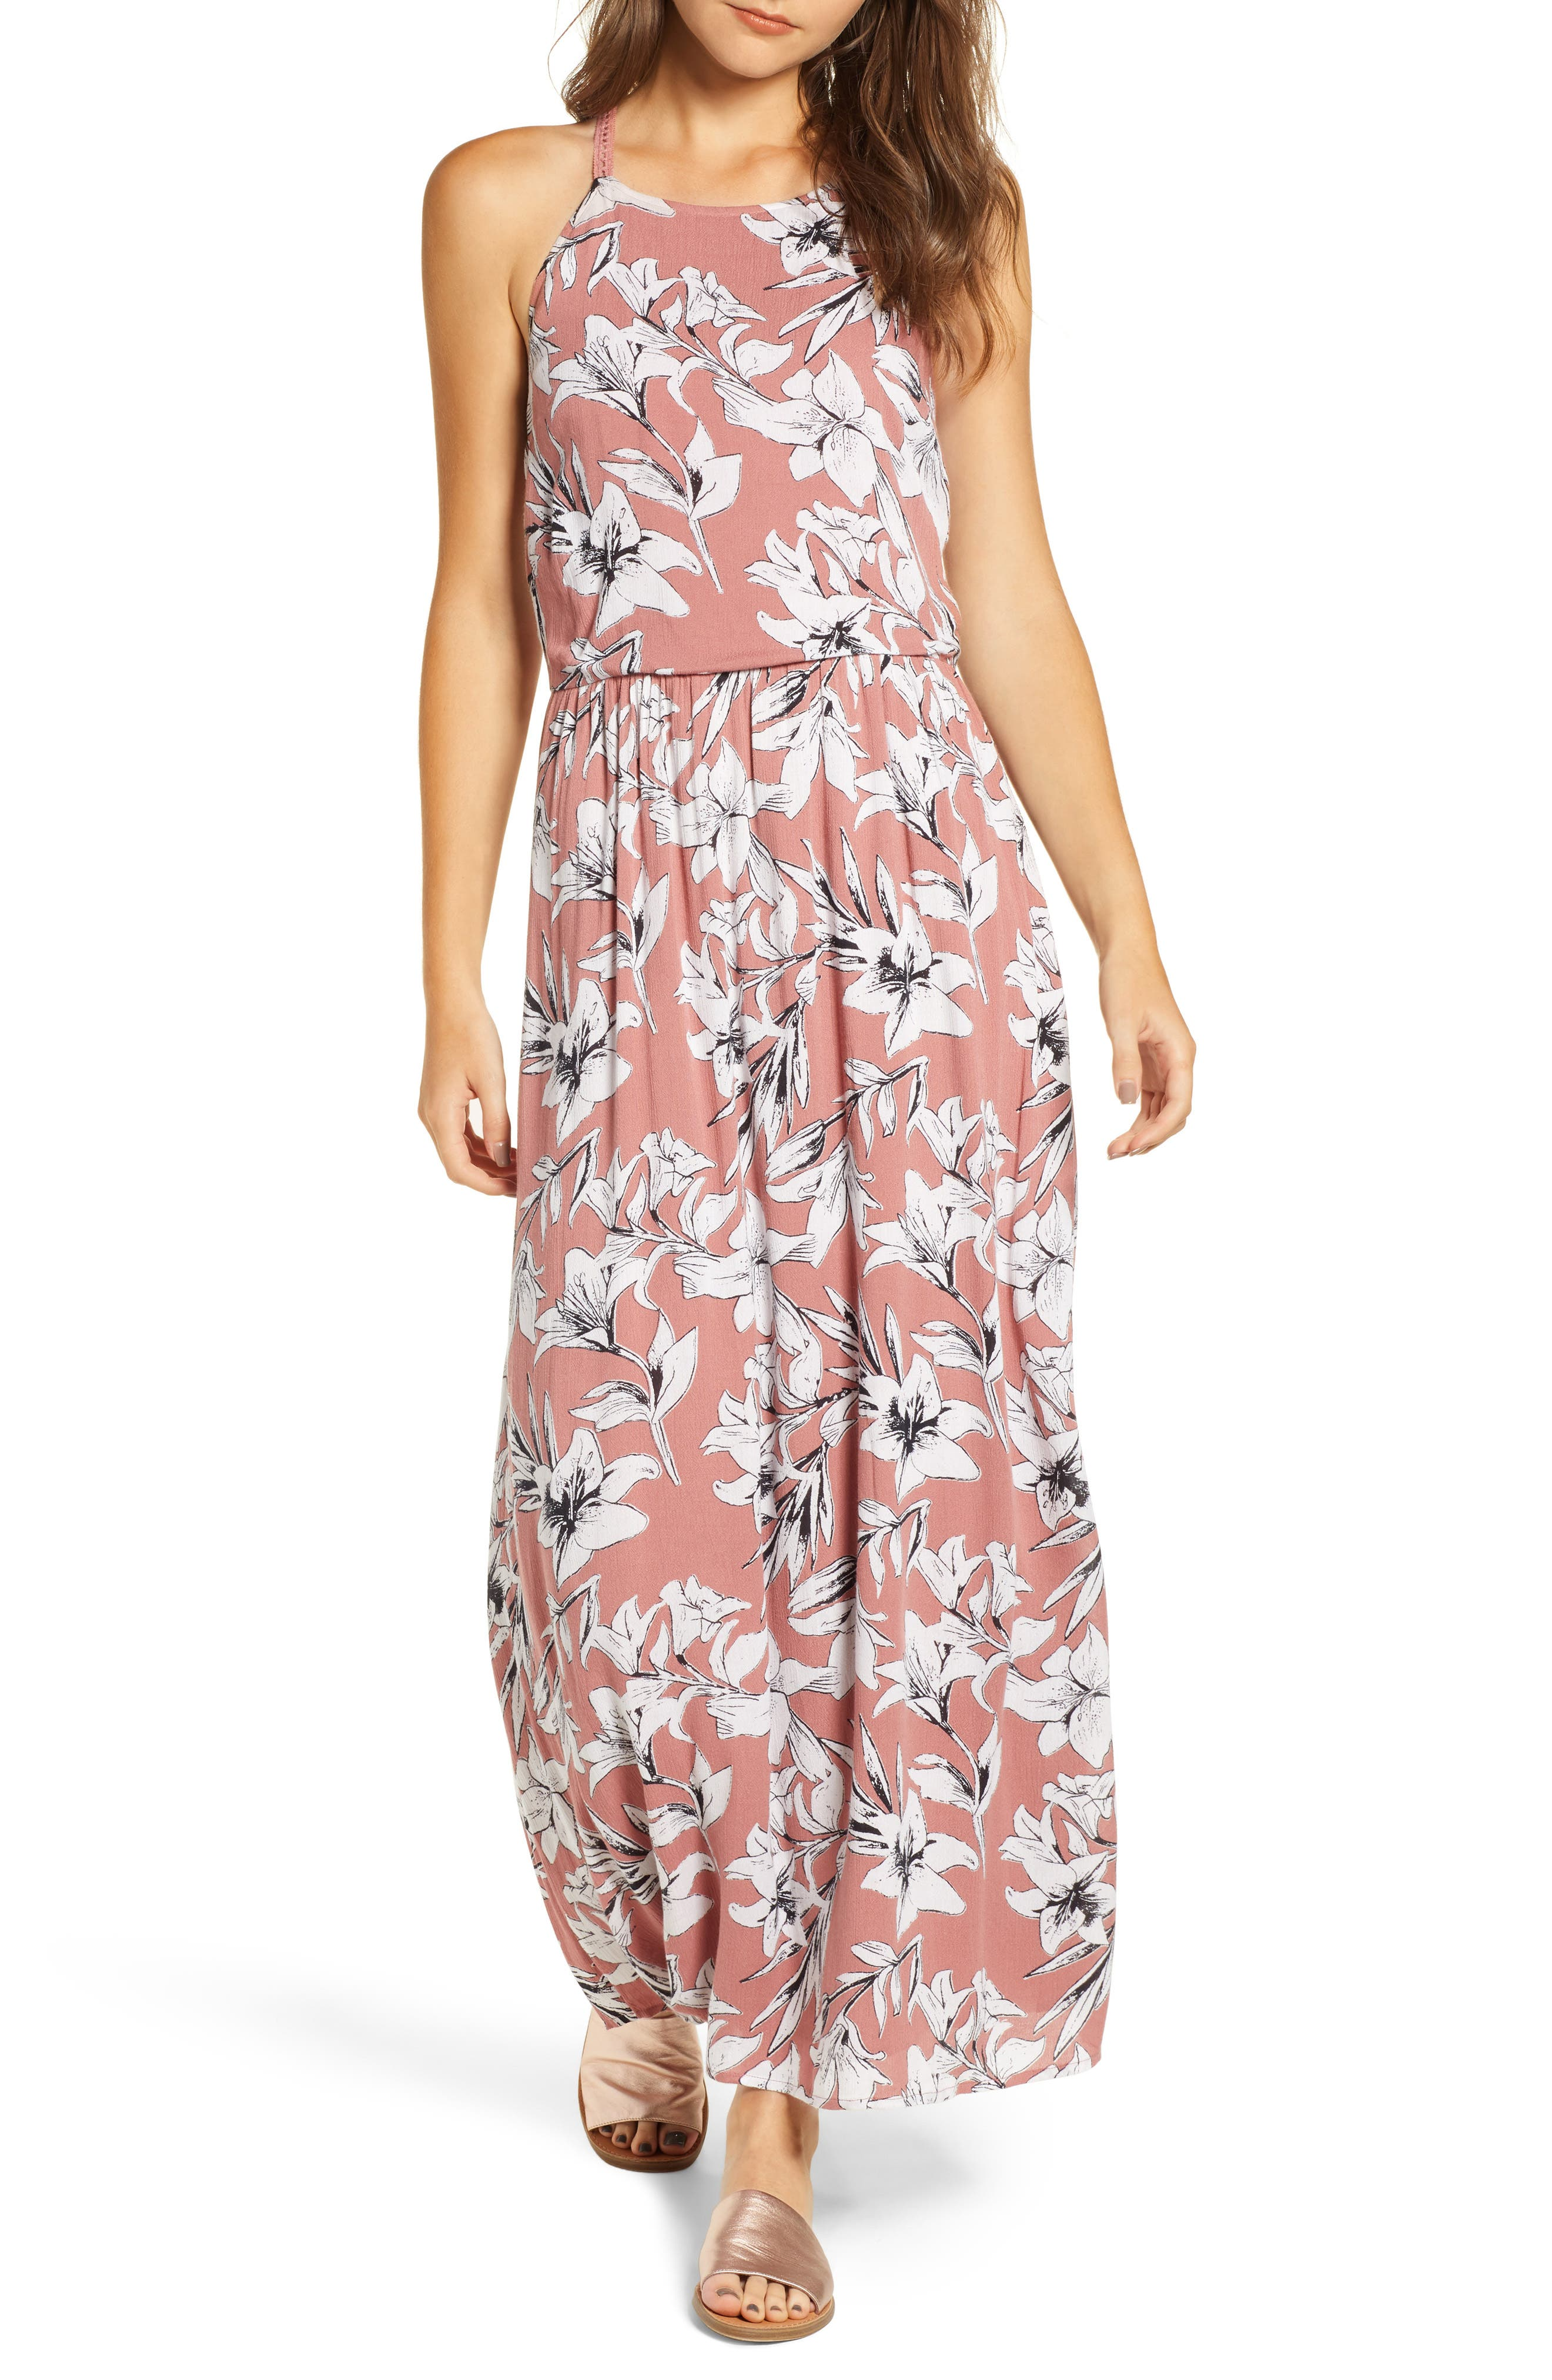 Pavement Border Maxi Dress,                         Main,                         color, WITHERED ROSE LILY HOUSE